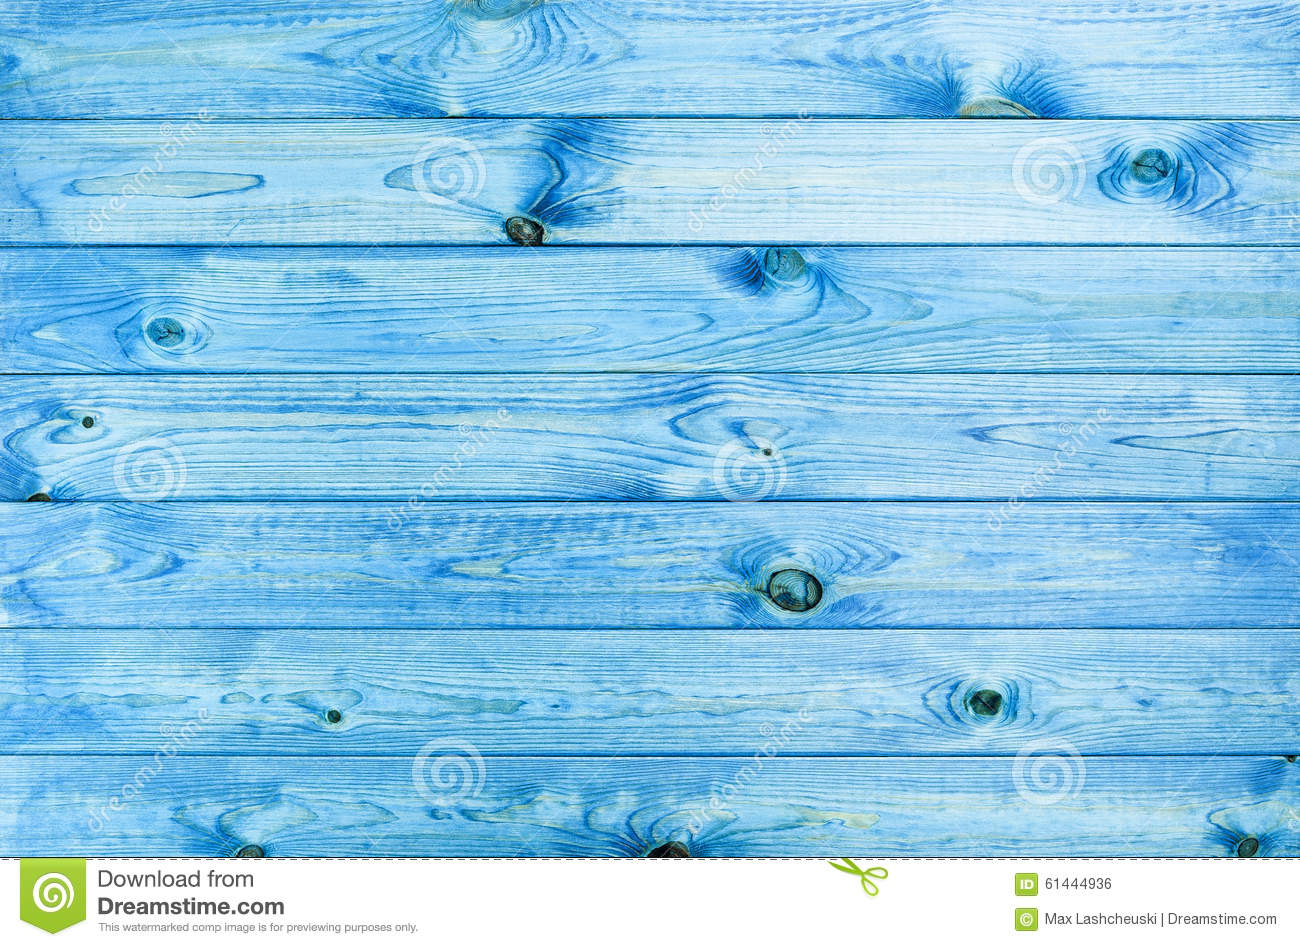 Incroyable Blue Wood Board Texture.